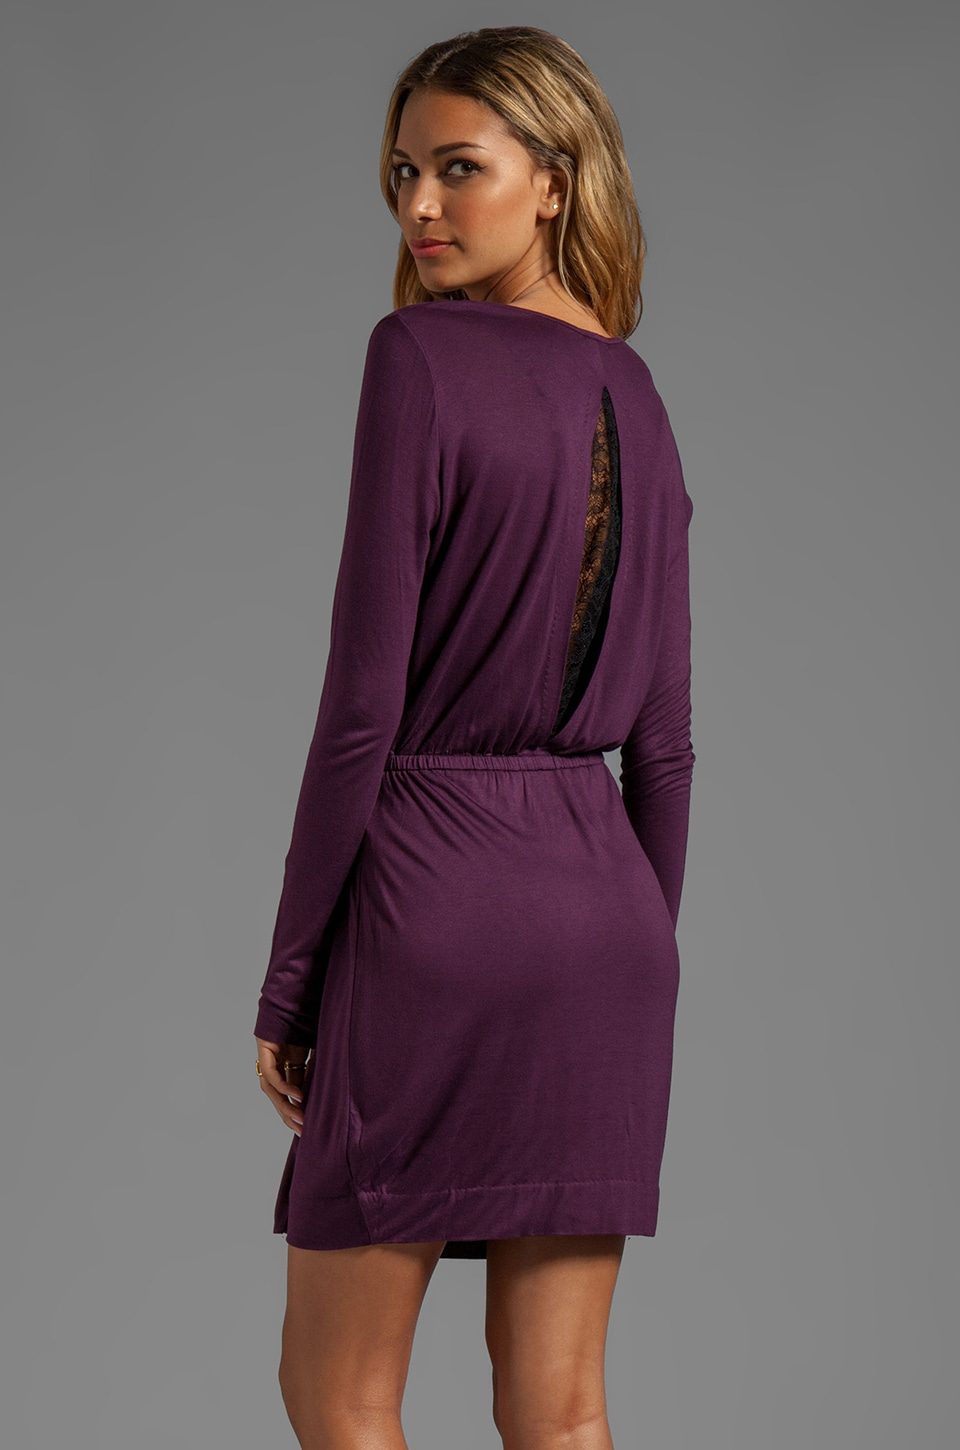 By Malene Birger Viscose Jersey Fina Dress in Italian Plum